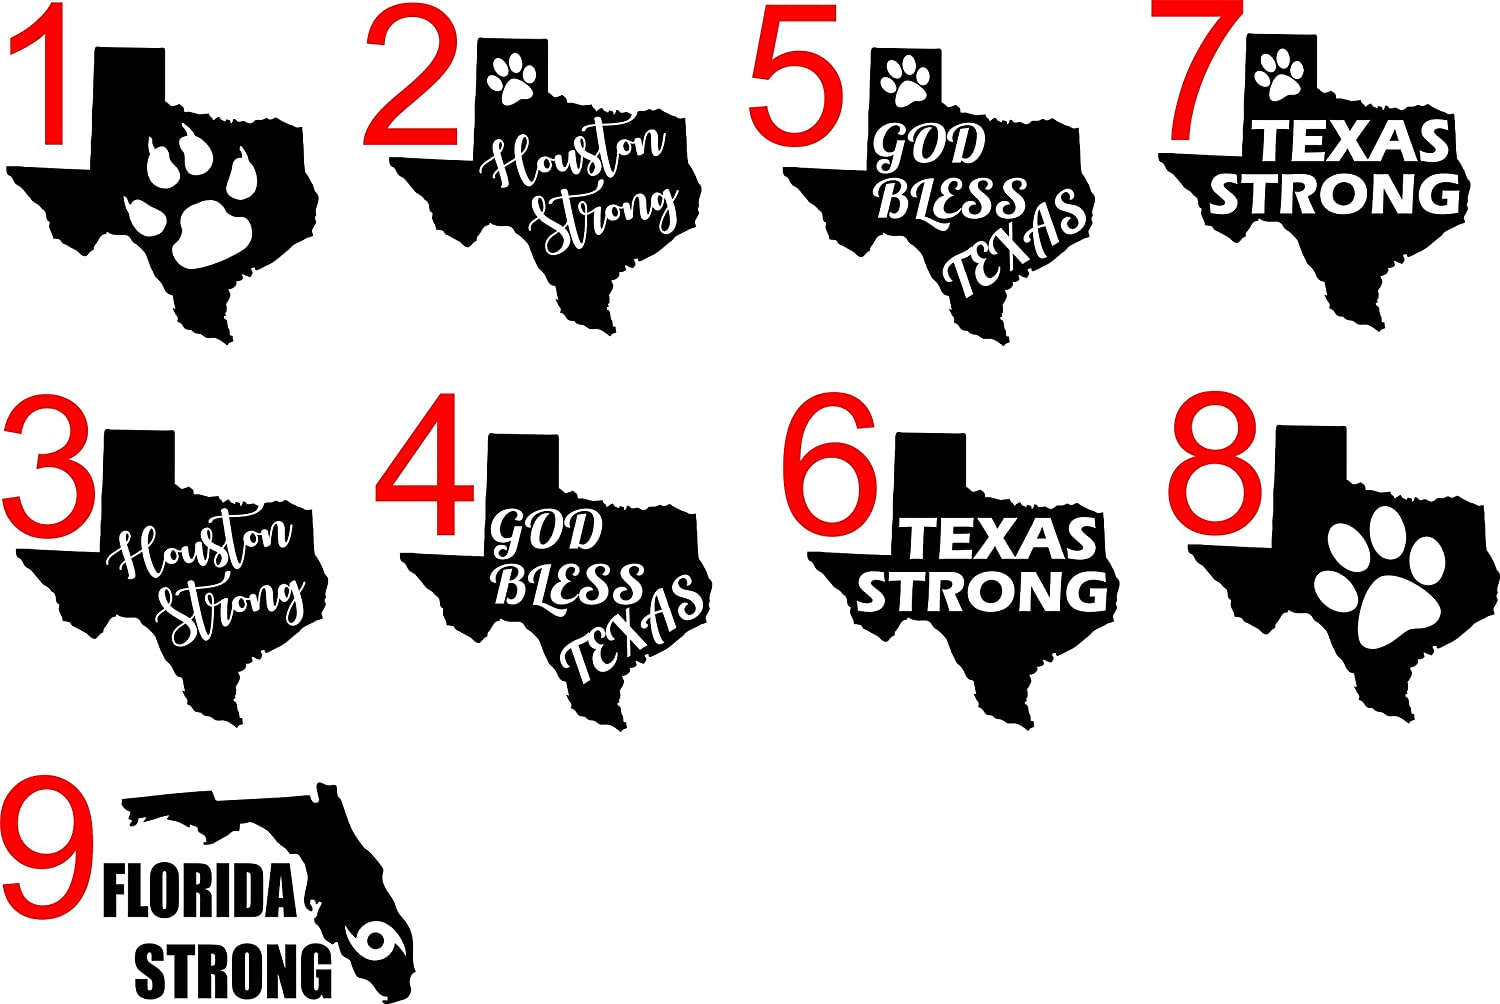 Amazon com vinyl decals window bumper stickers florida strong texas strong houston strong god bless texas all profits benefiting hurricane relief